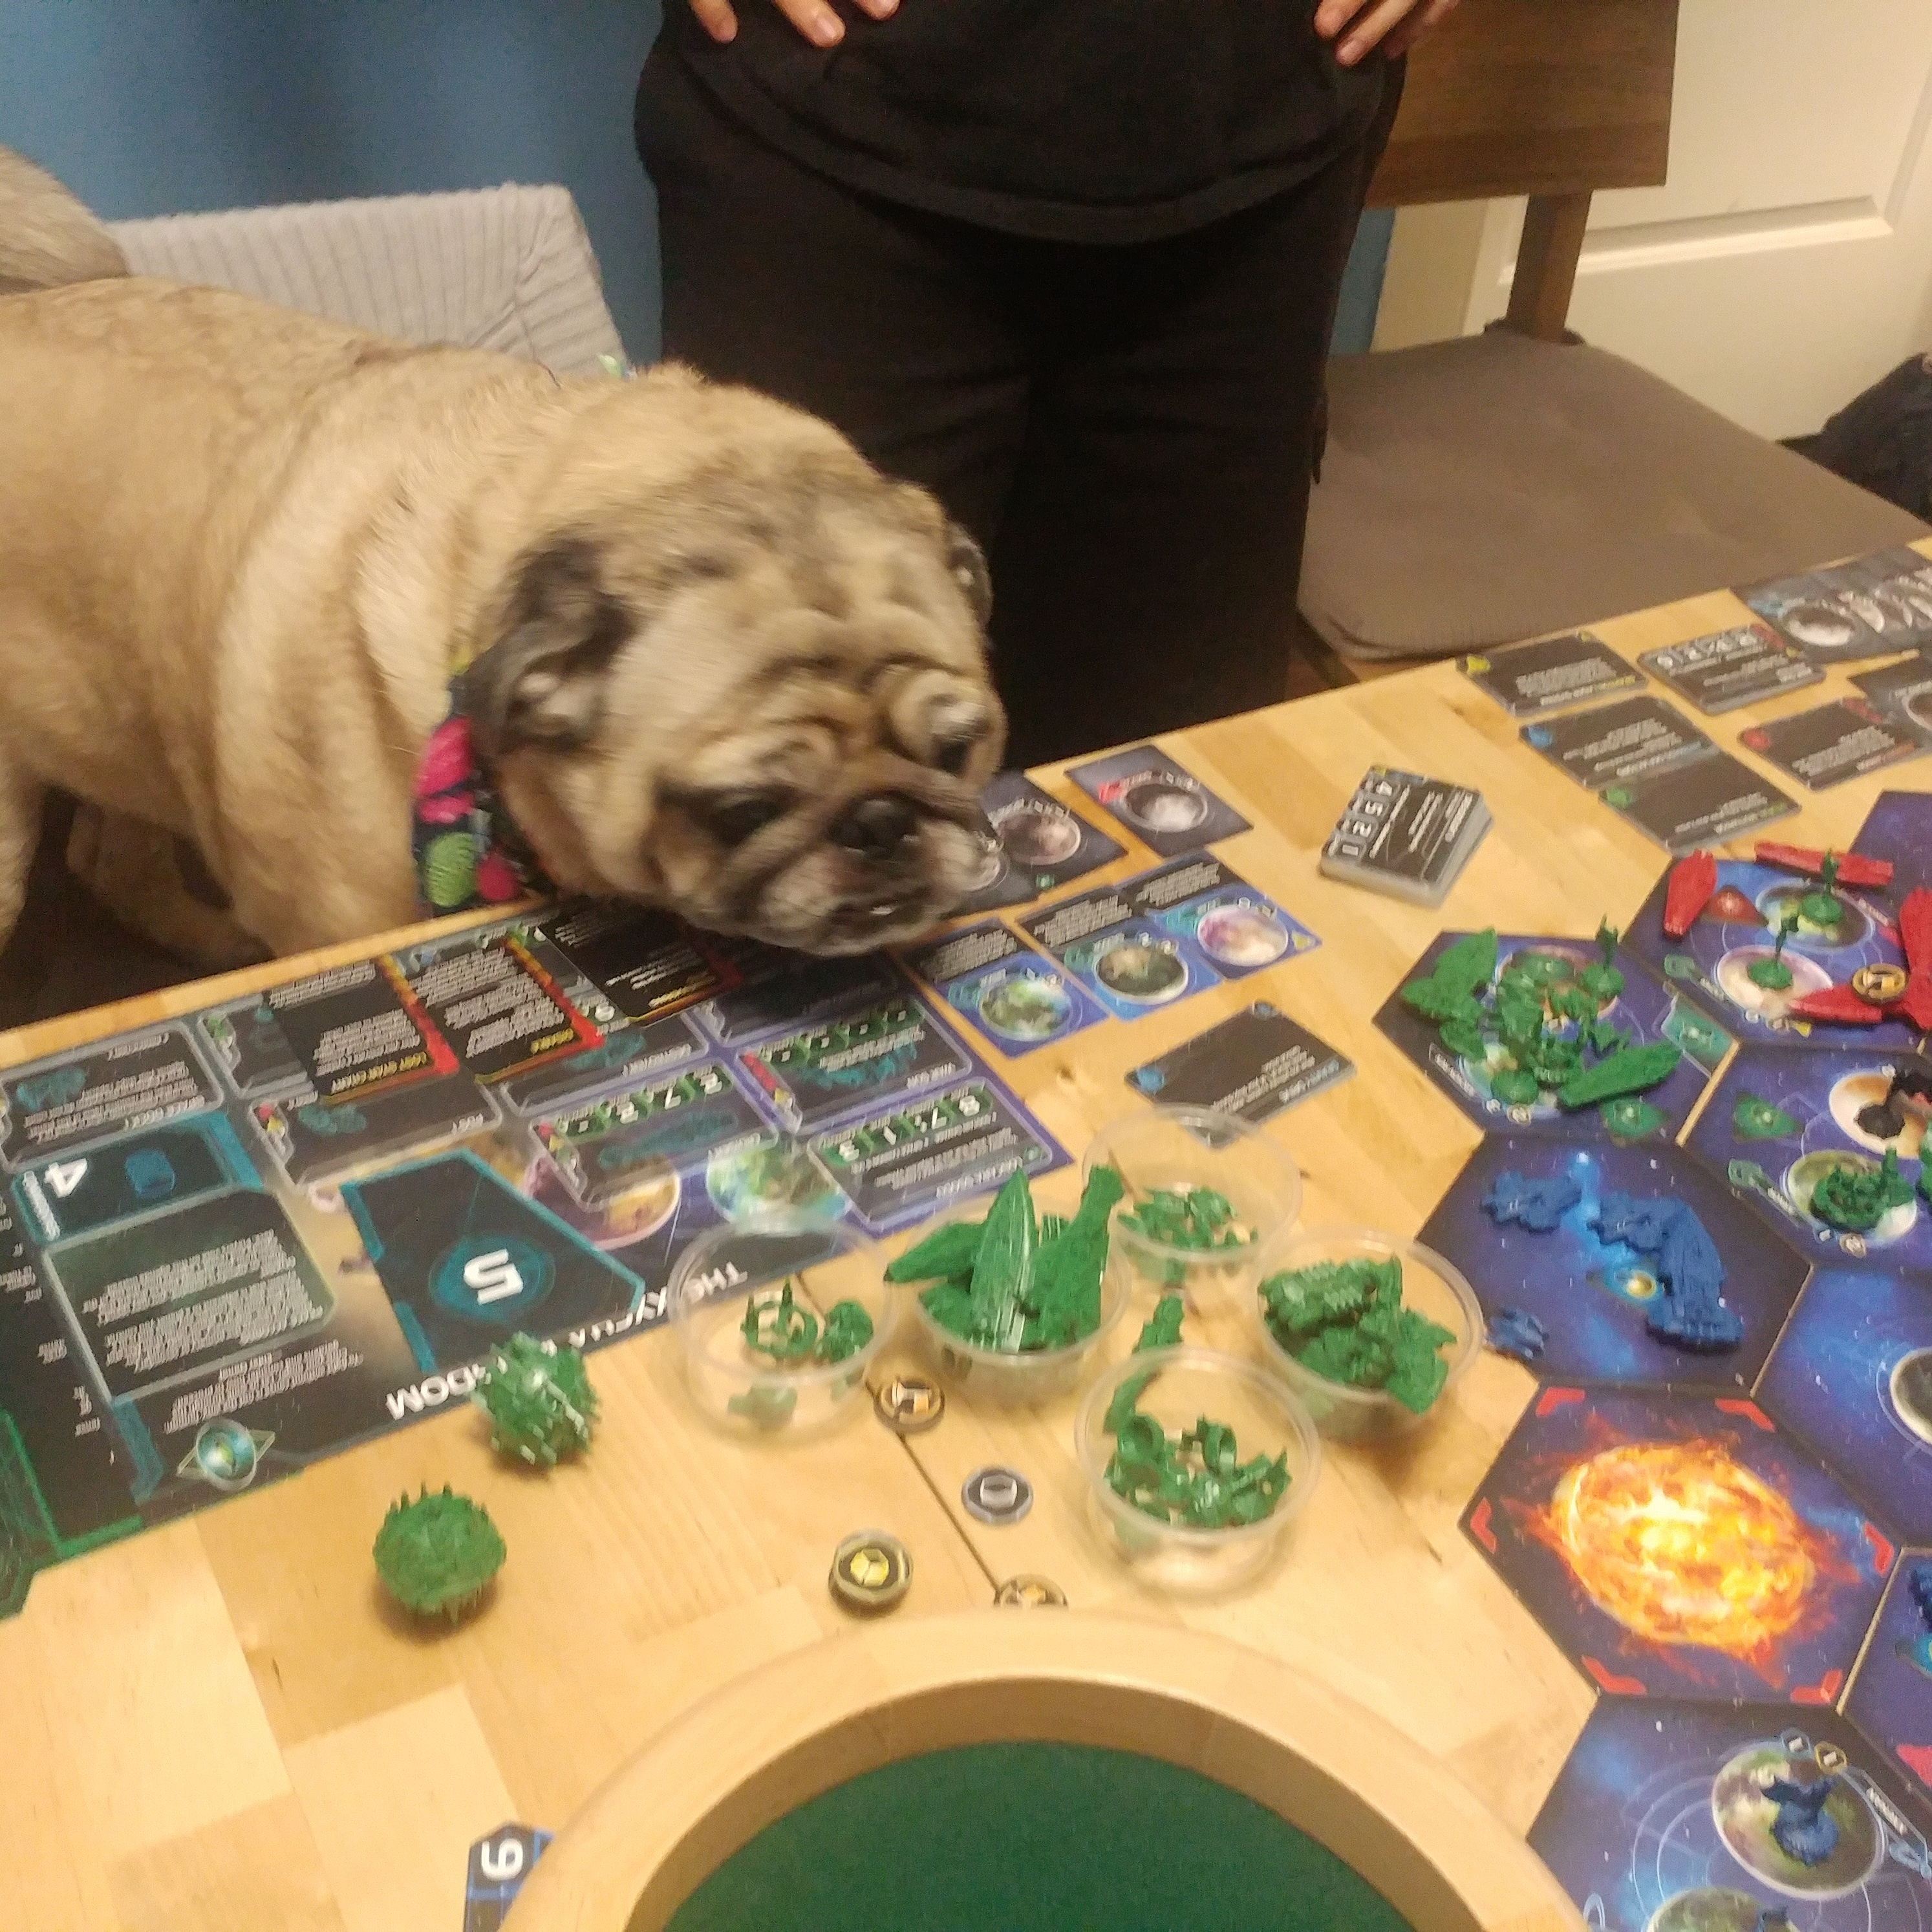 Playing Twilight Imperium 4th Edition for the First Time